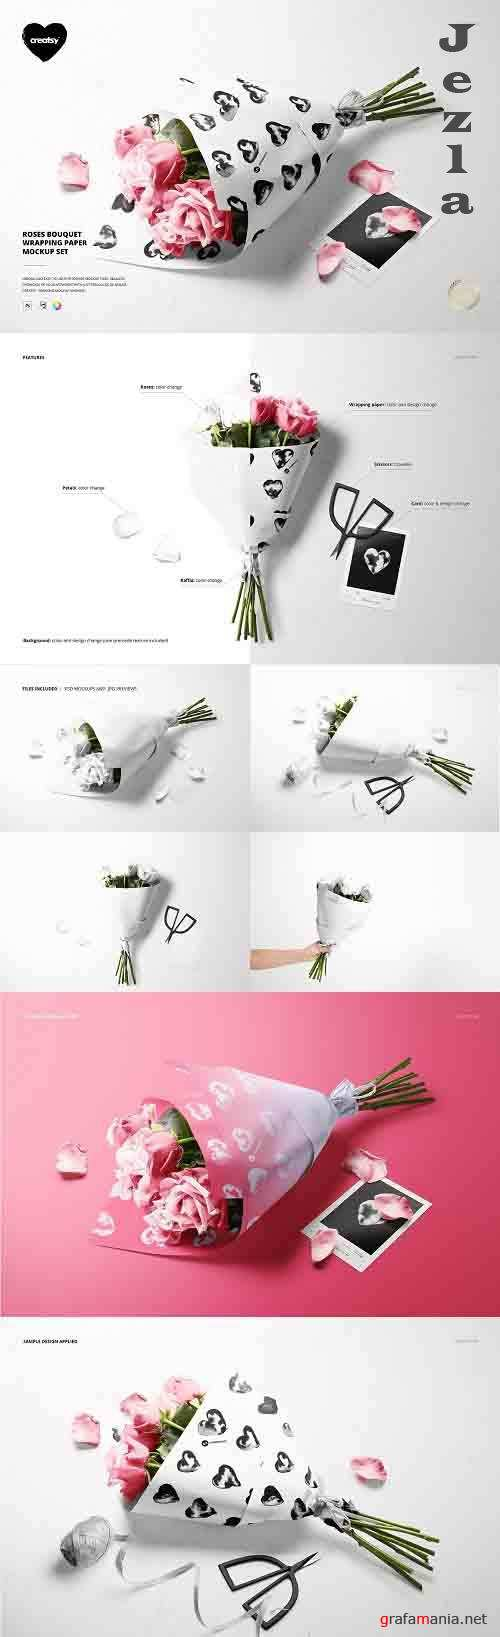 CreativeMarket - Roses Bouquet Wrapping Paper Mockup 5884381